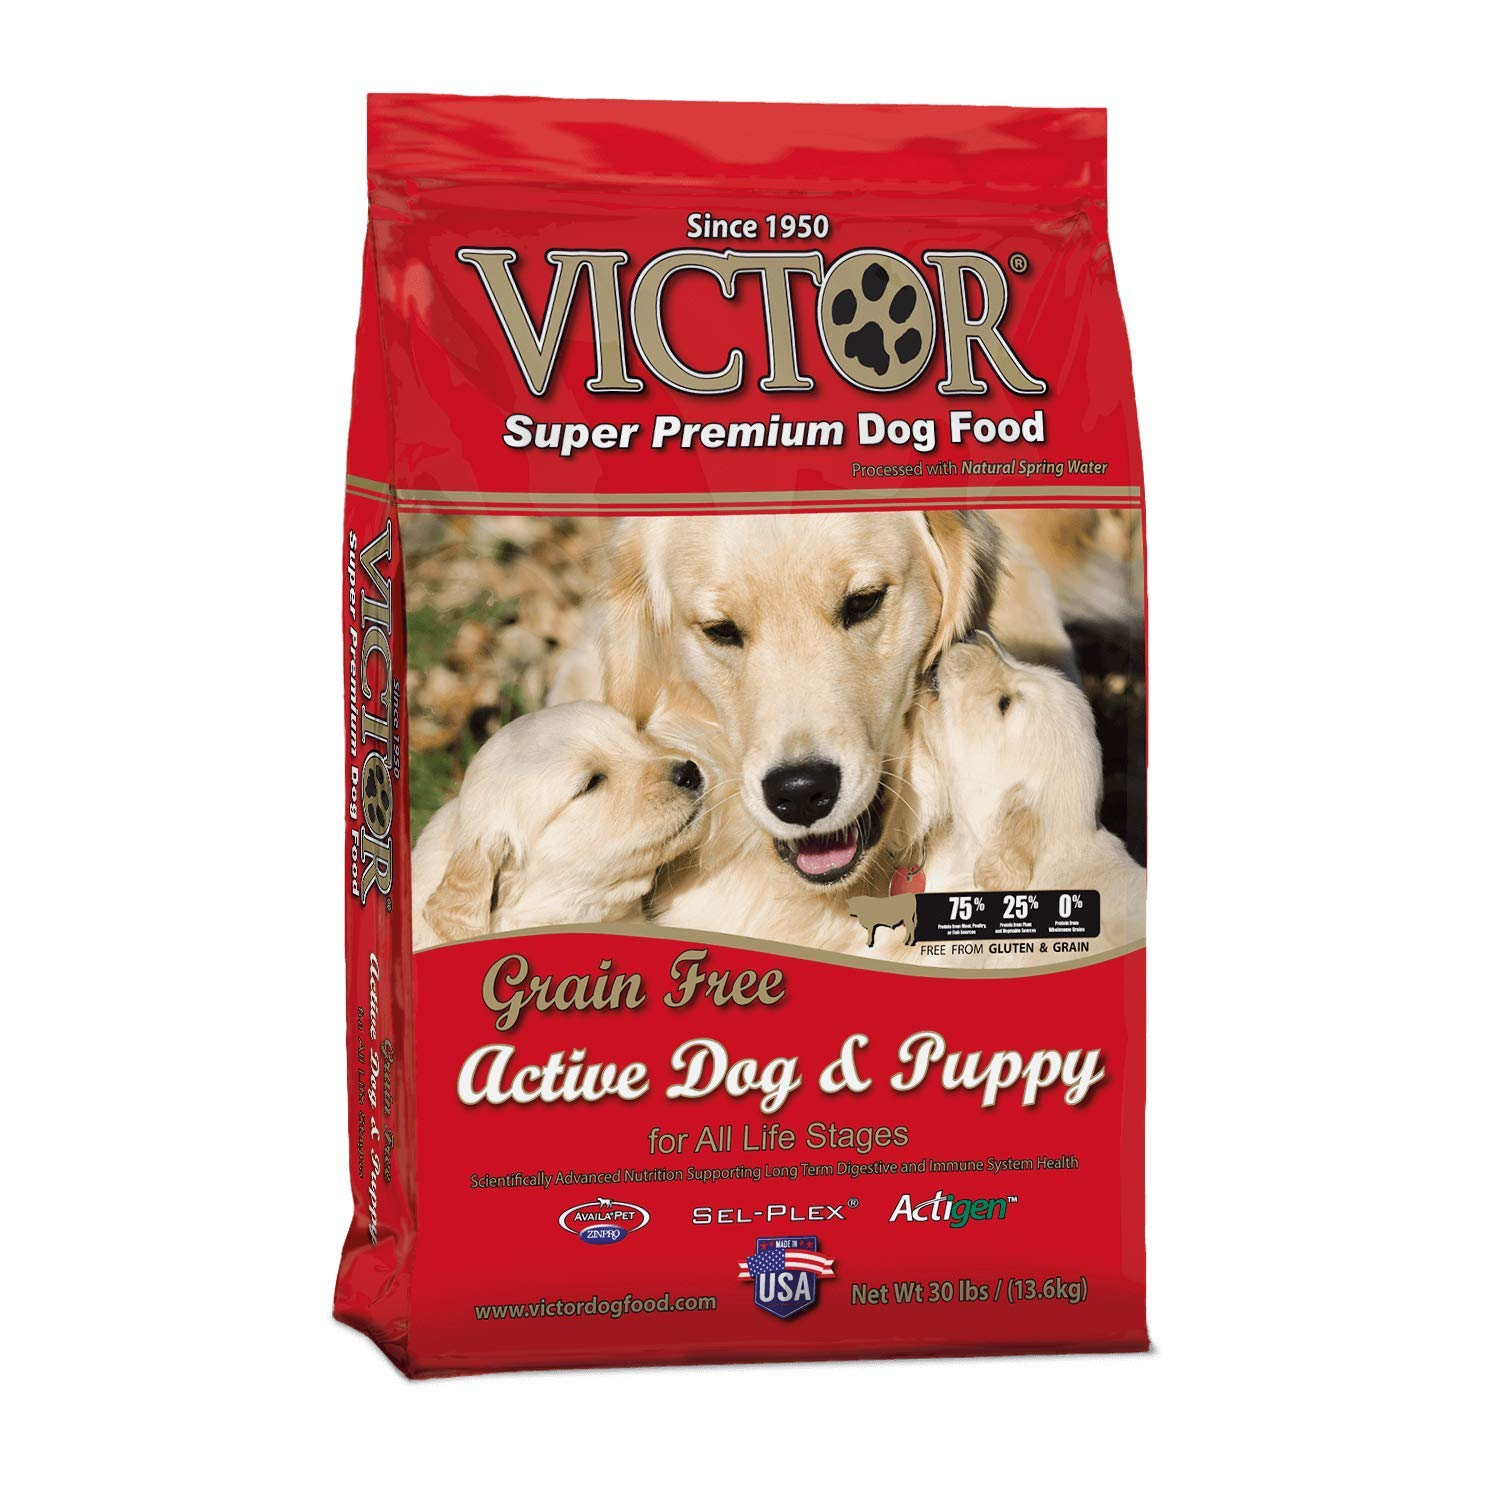 Victor Active Dog And Puppy Grain Free Dry Dog Food